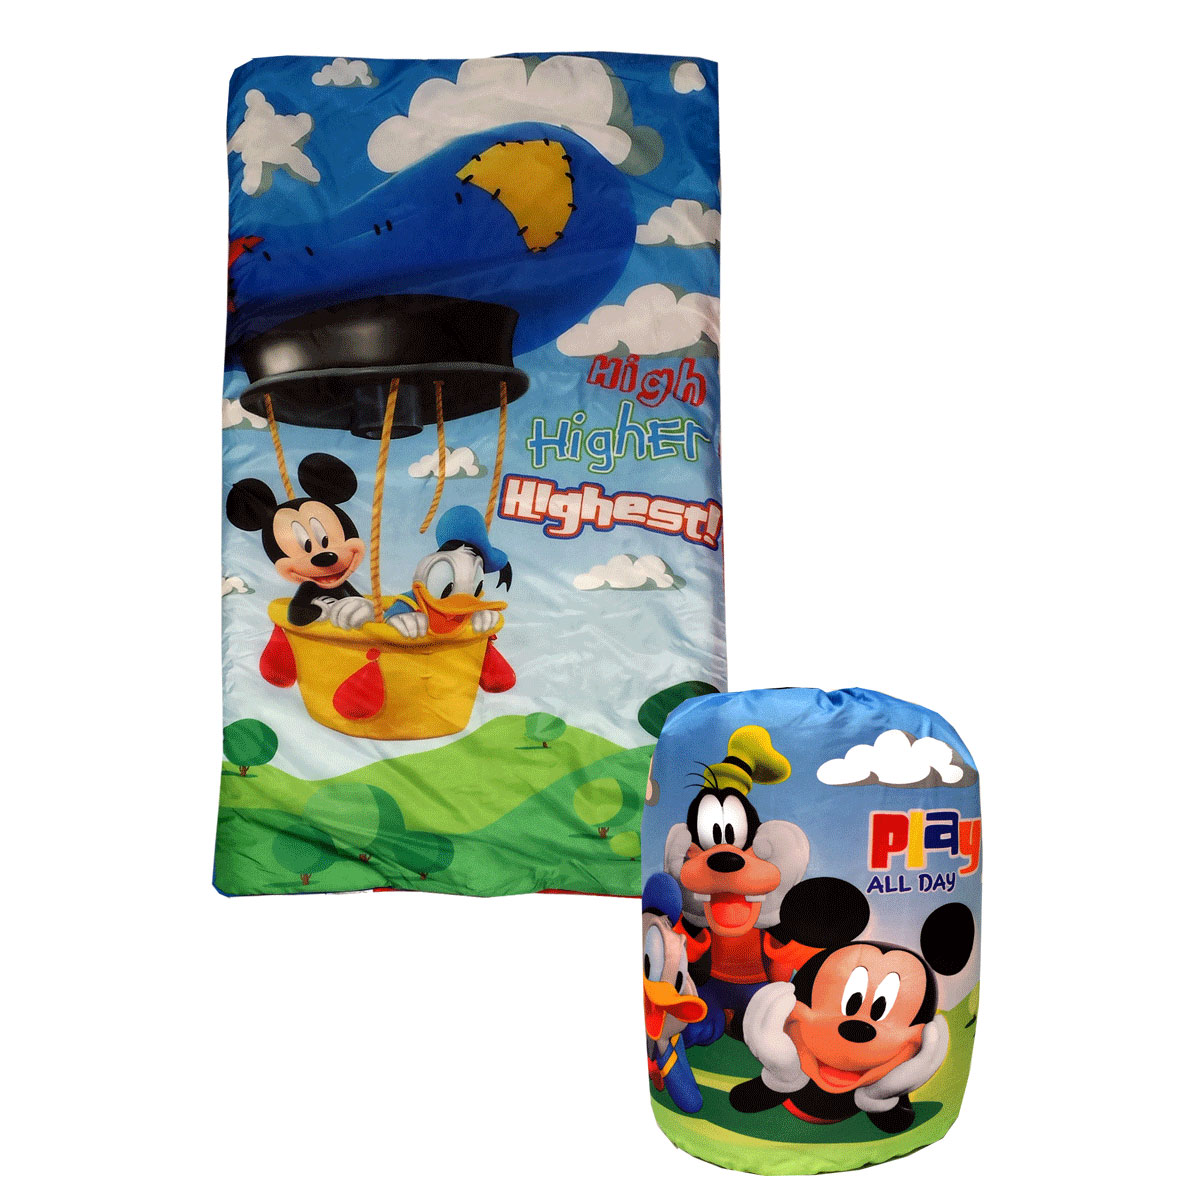 2pc Disney Mickey Mouse Sleeping Bag Backpack Set